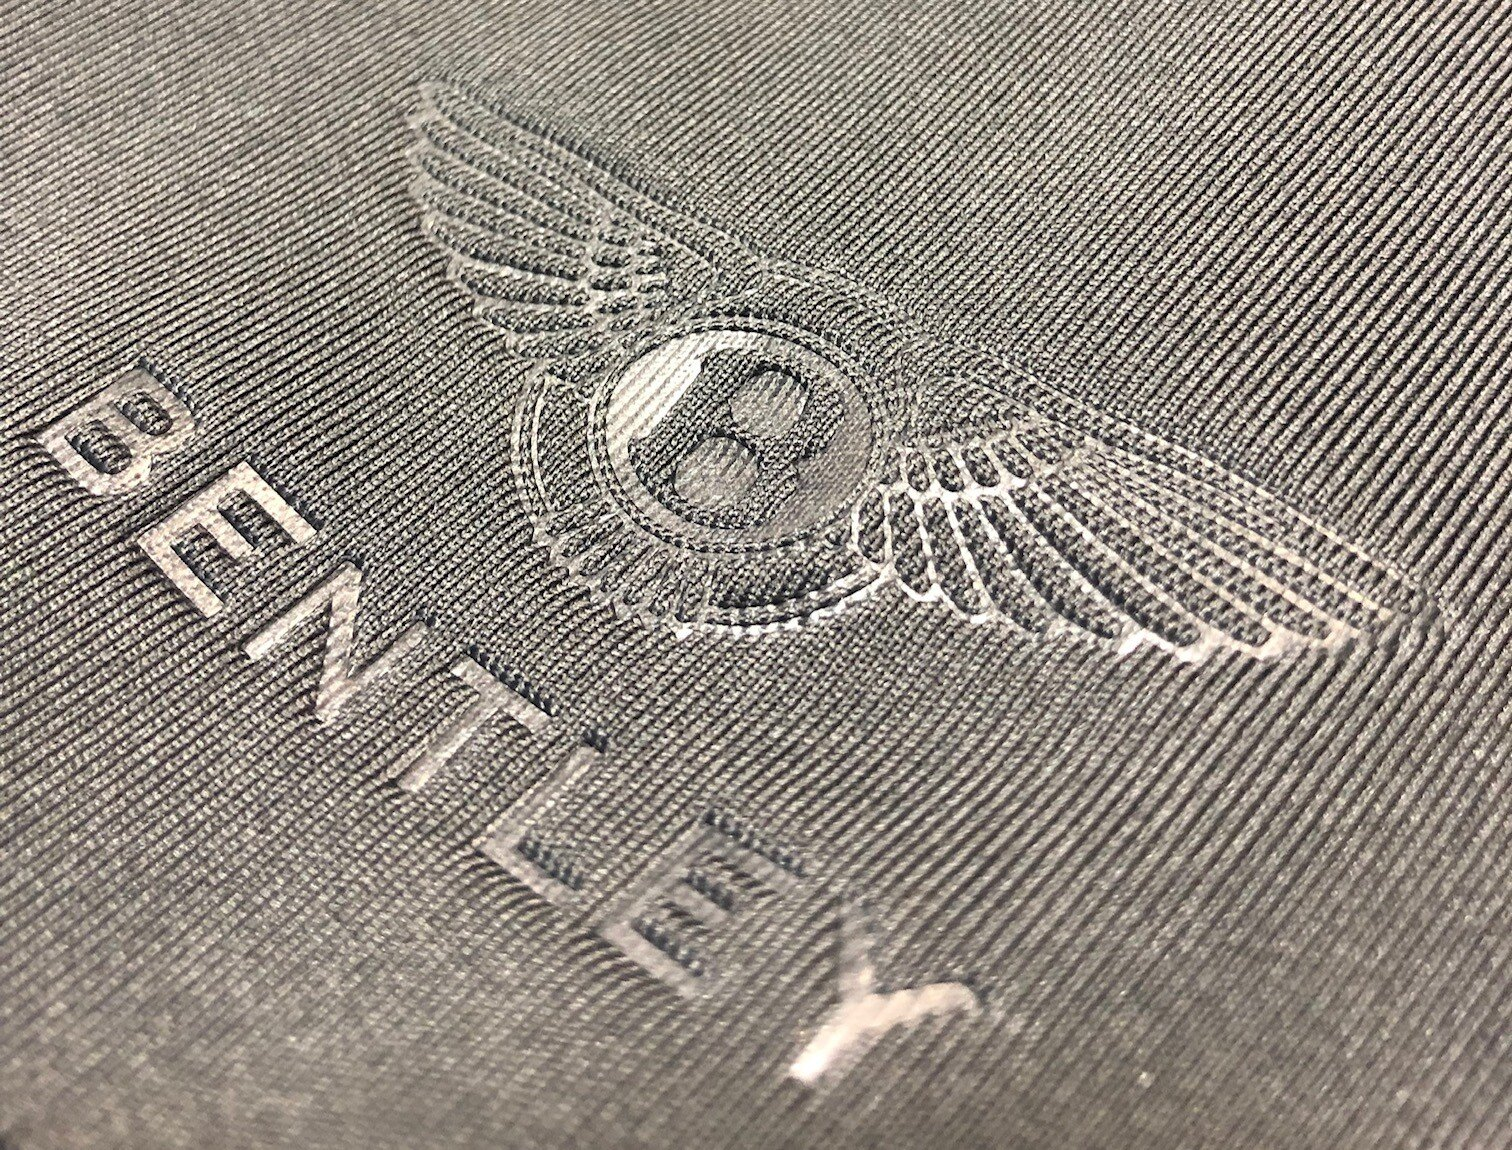 logounltd_laser_etching_embroidery_screen_printing_apparel_uniform_custom_tshirts_t_shirt_kirkland_bellevue_seattle_redmond_woodinville_branded_merchandise_promotional_products_logo_unltd_deboss_bentley (5).jpg